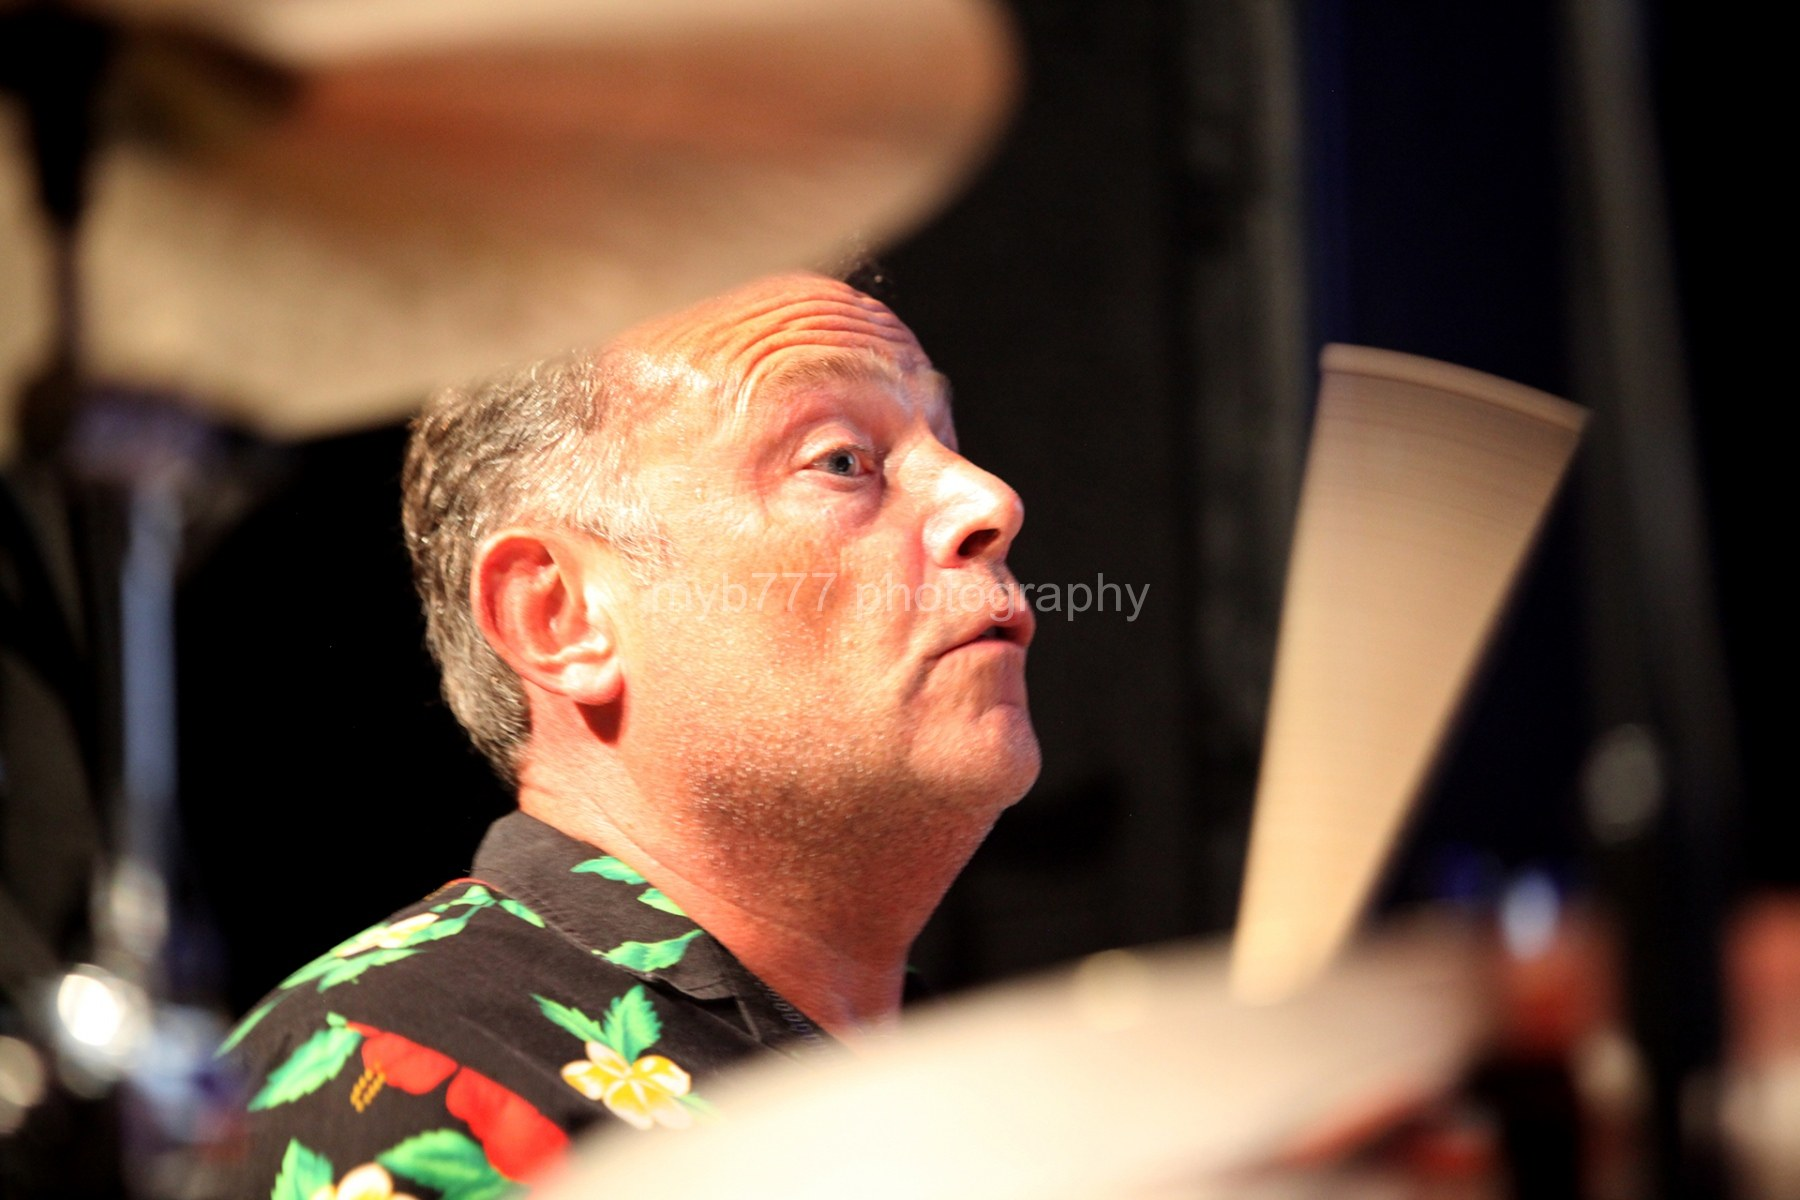 Drummer-Photography-by-myb777-11